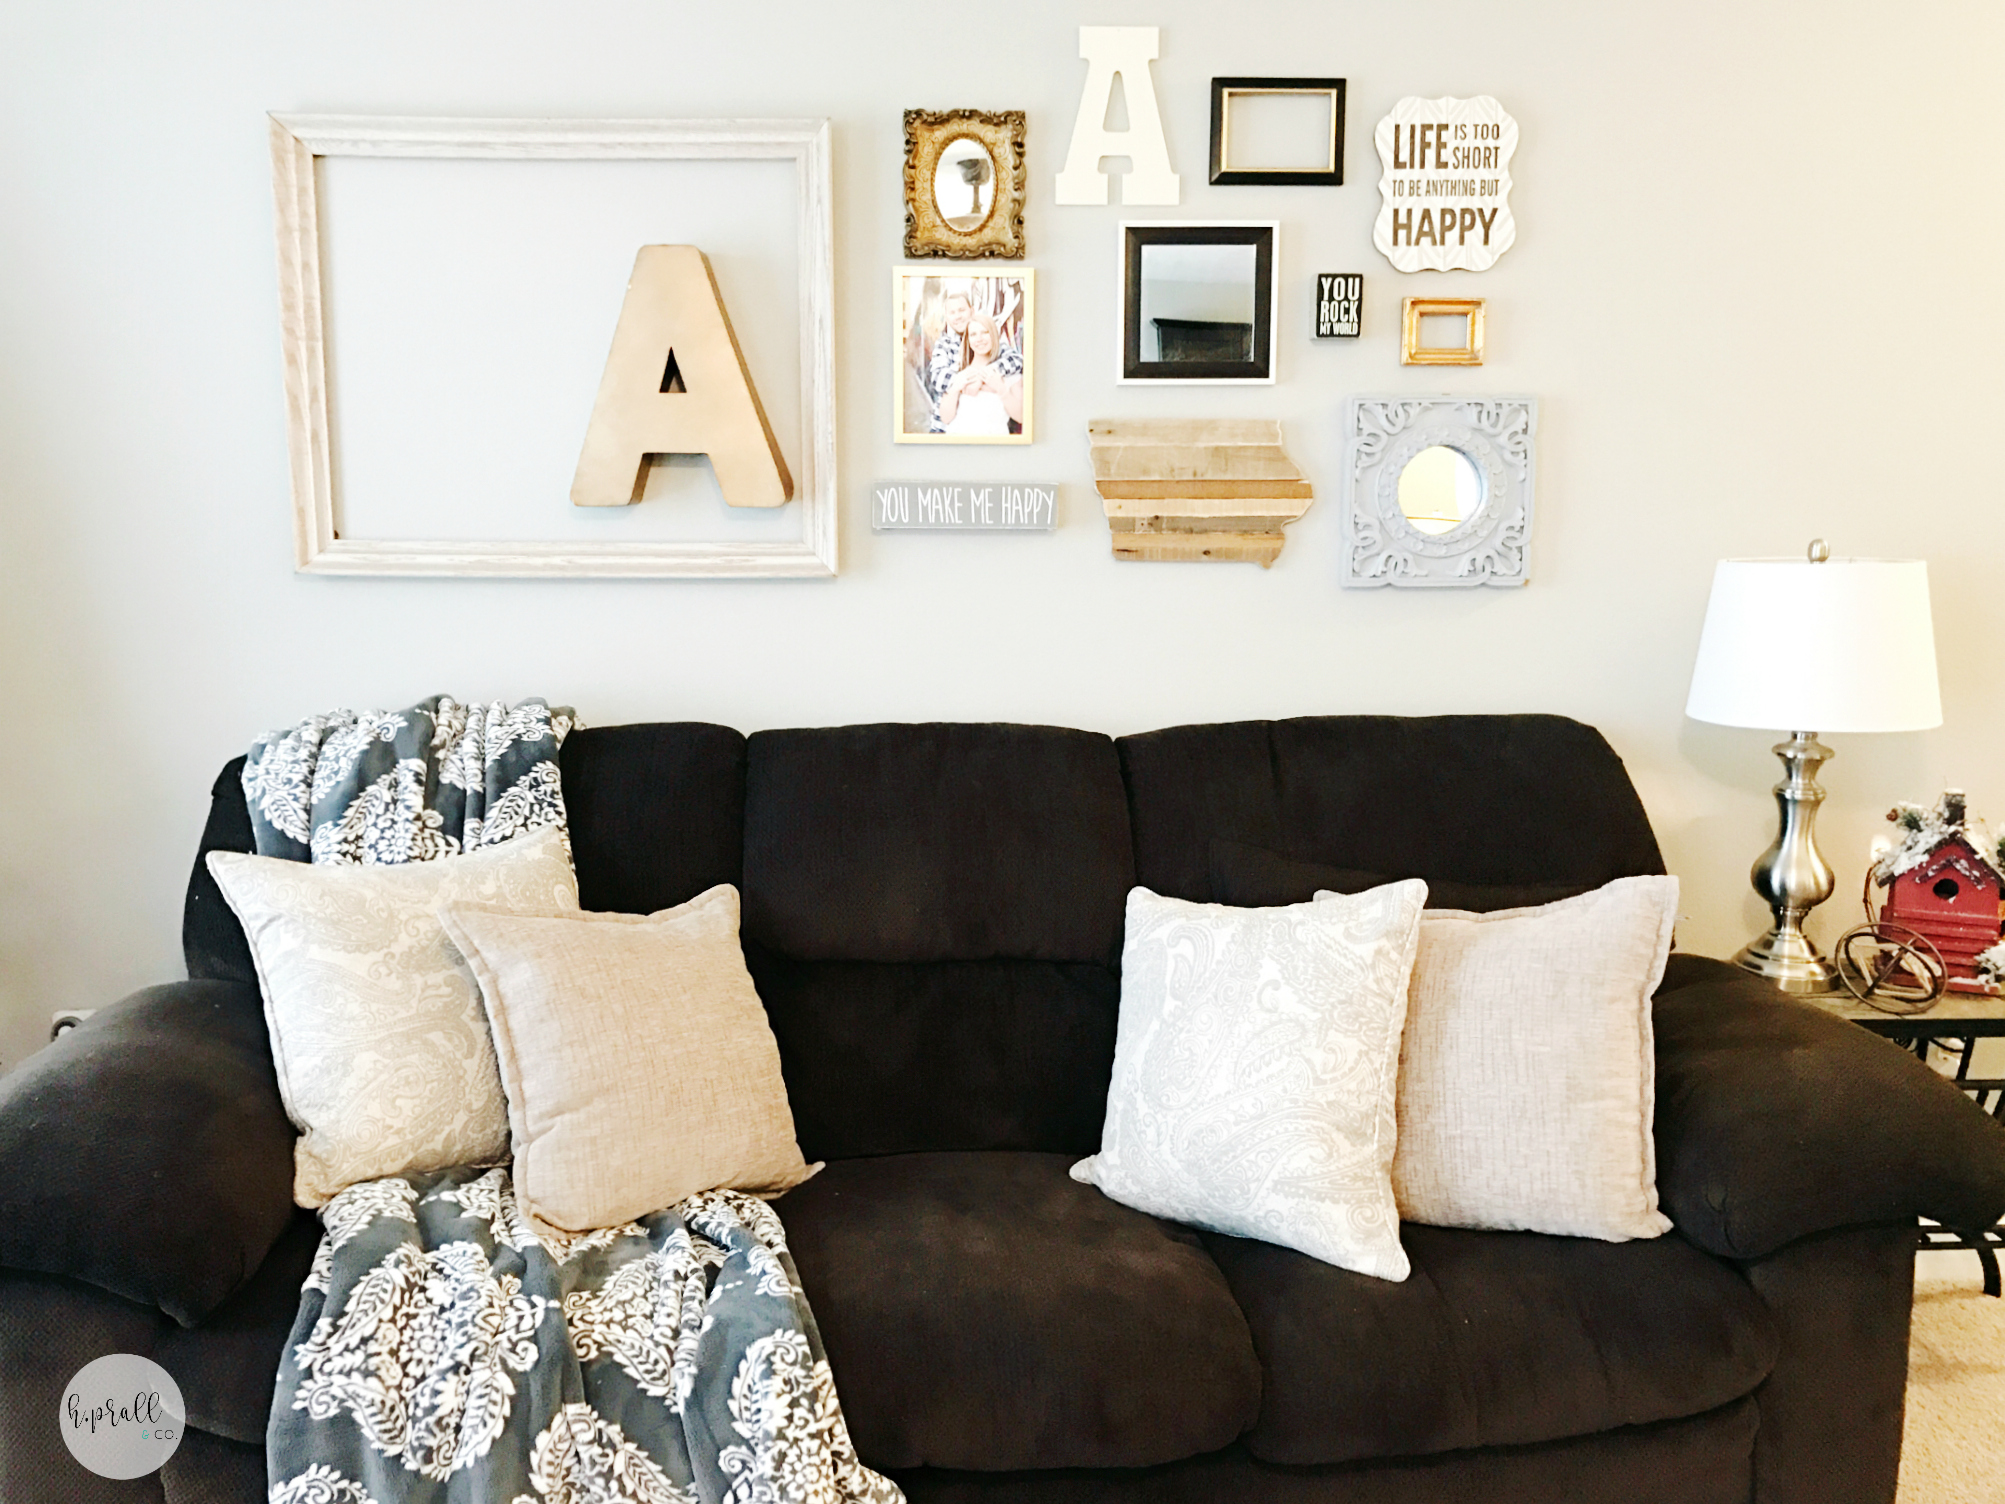 Simple gallery wall layout and design by H.Prall & Co. with a neutral color palette.